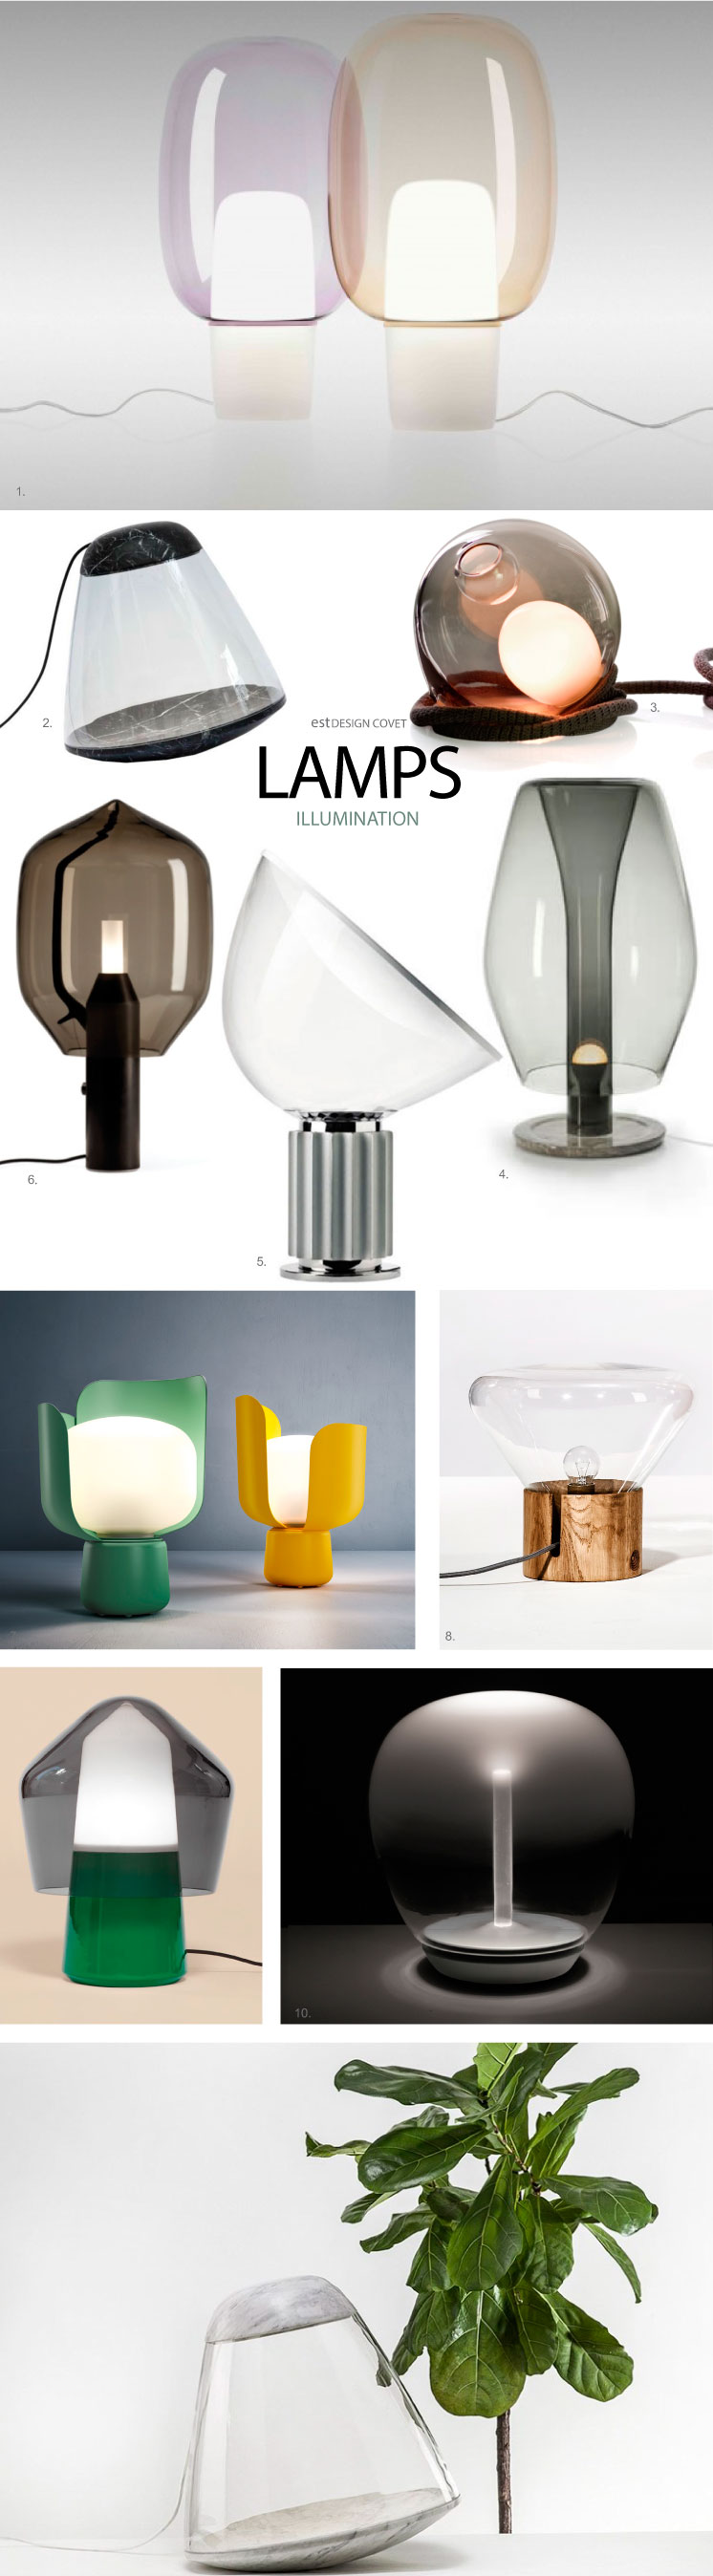 Design-Covet-_-LAMPS